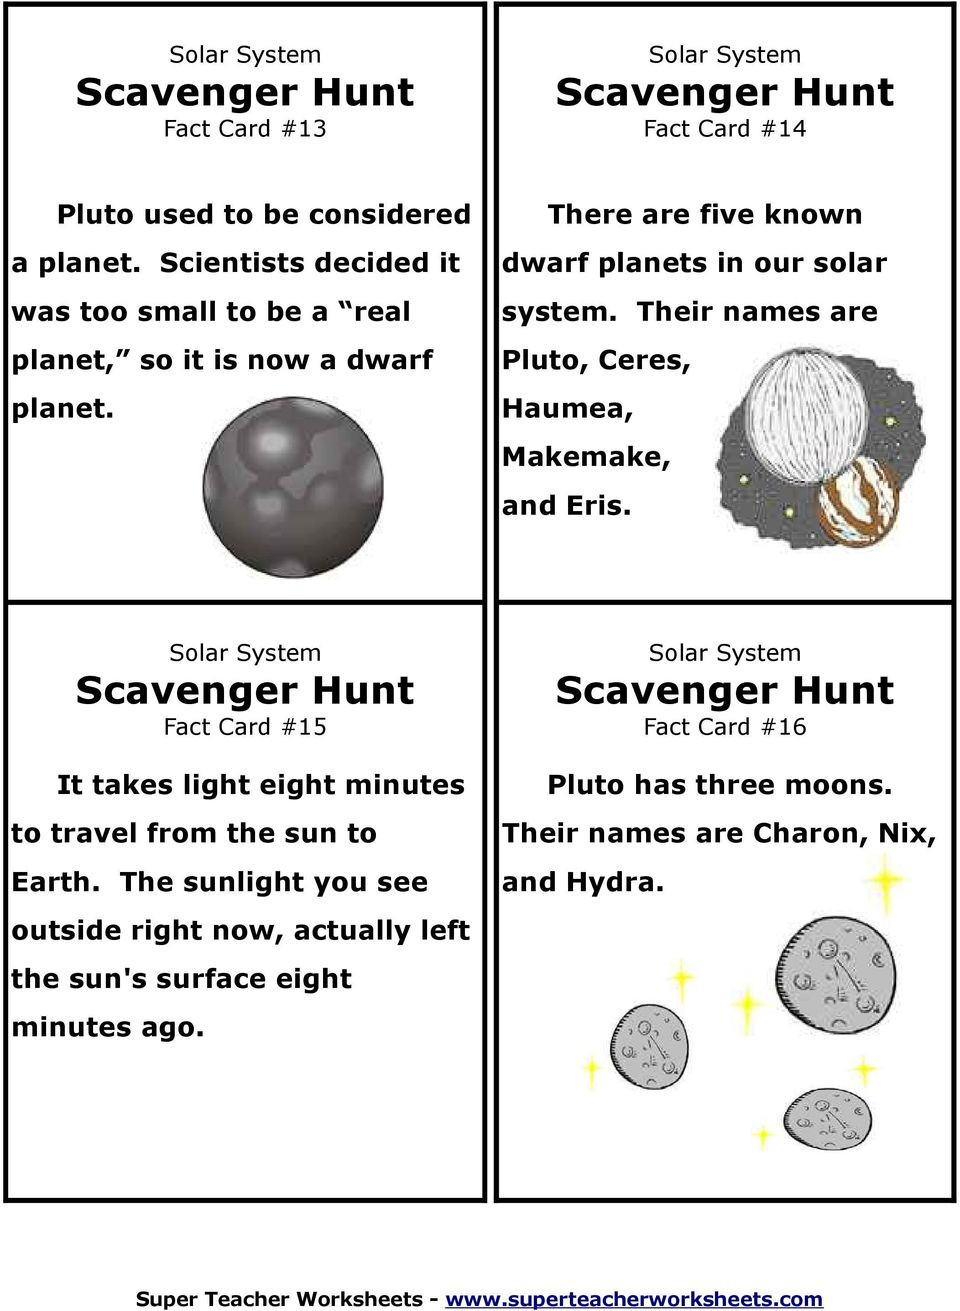 Solar System Worksheet Middle School Our solar System Scavenger Hunt Activity Pdf Free Download